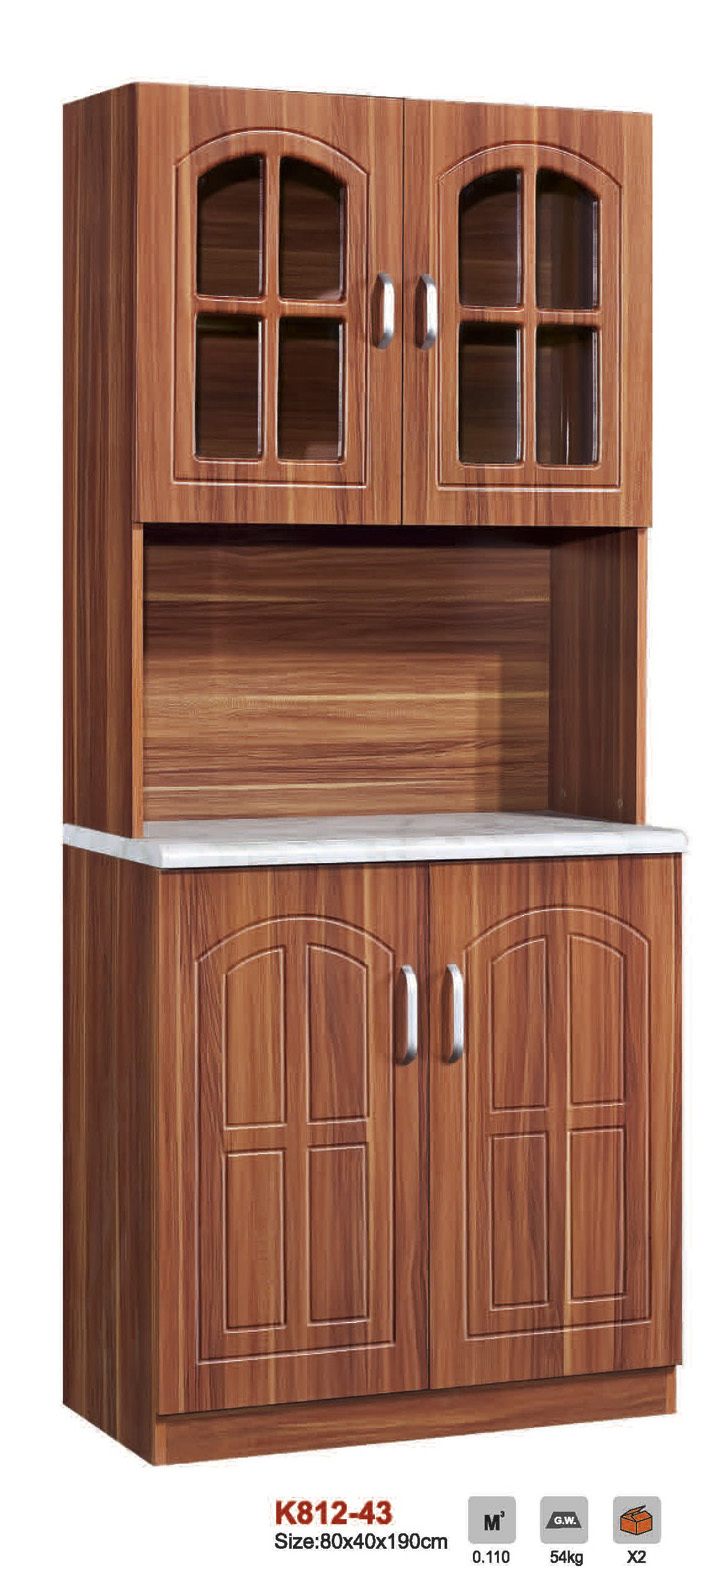 Https Www Alibaba Com Product Detail K812 43 Indian Style Kitchen Unit 60108760720 Html